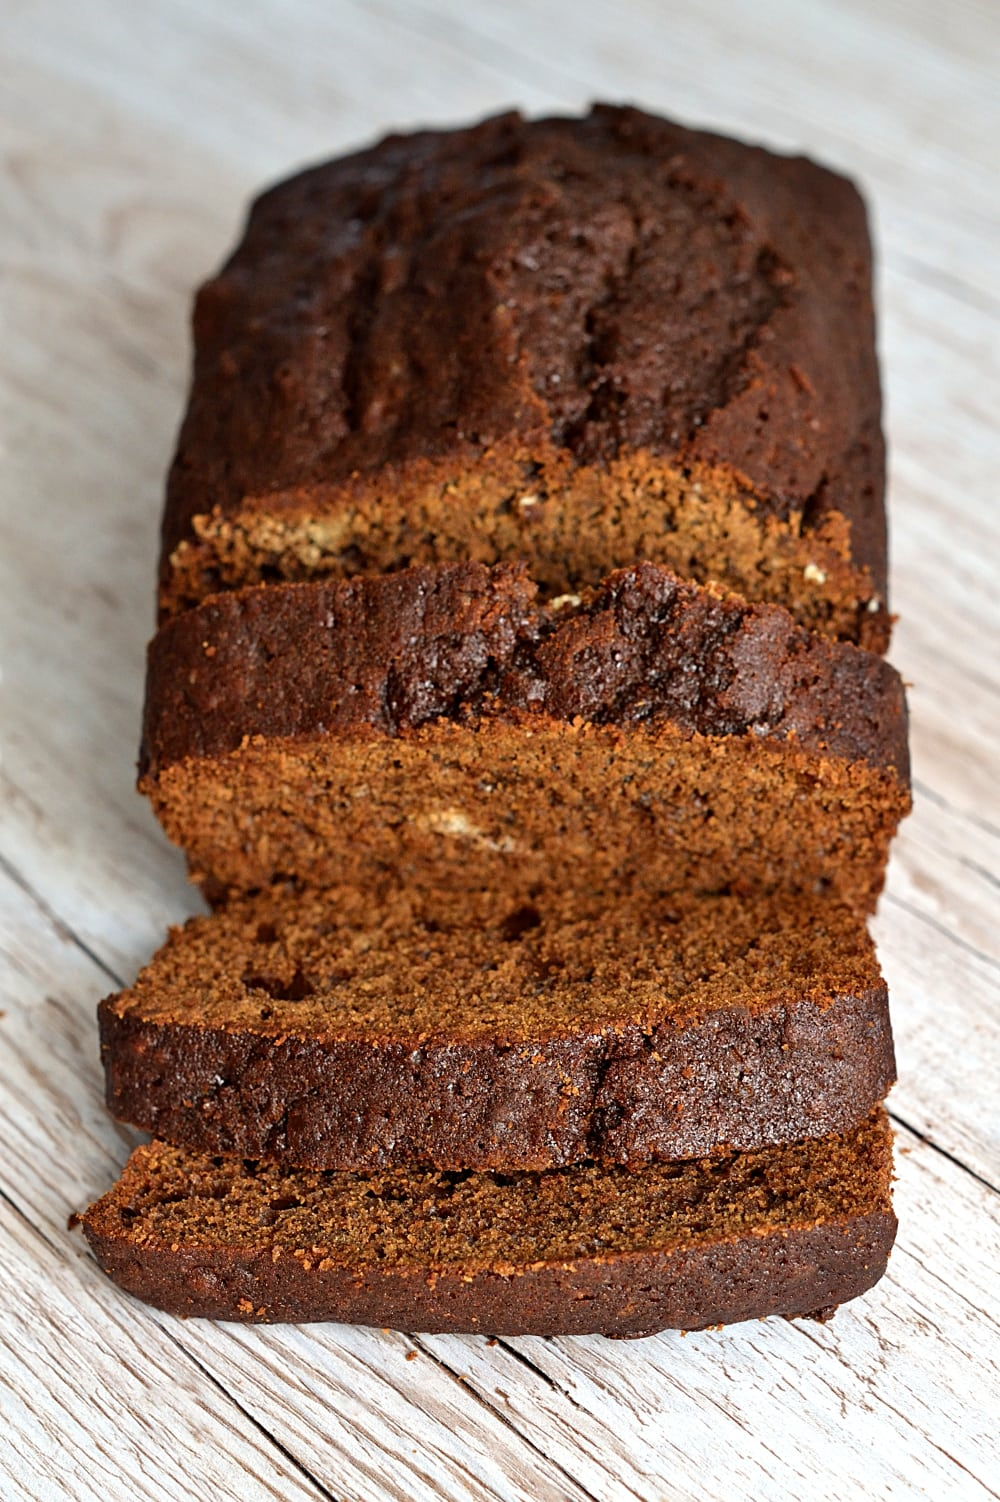 Gingerbread Loaf Cake recipe from Baking with Granny. Classic British recipe for gingerbread cake.